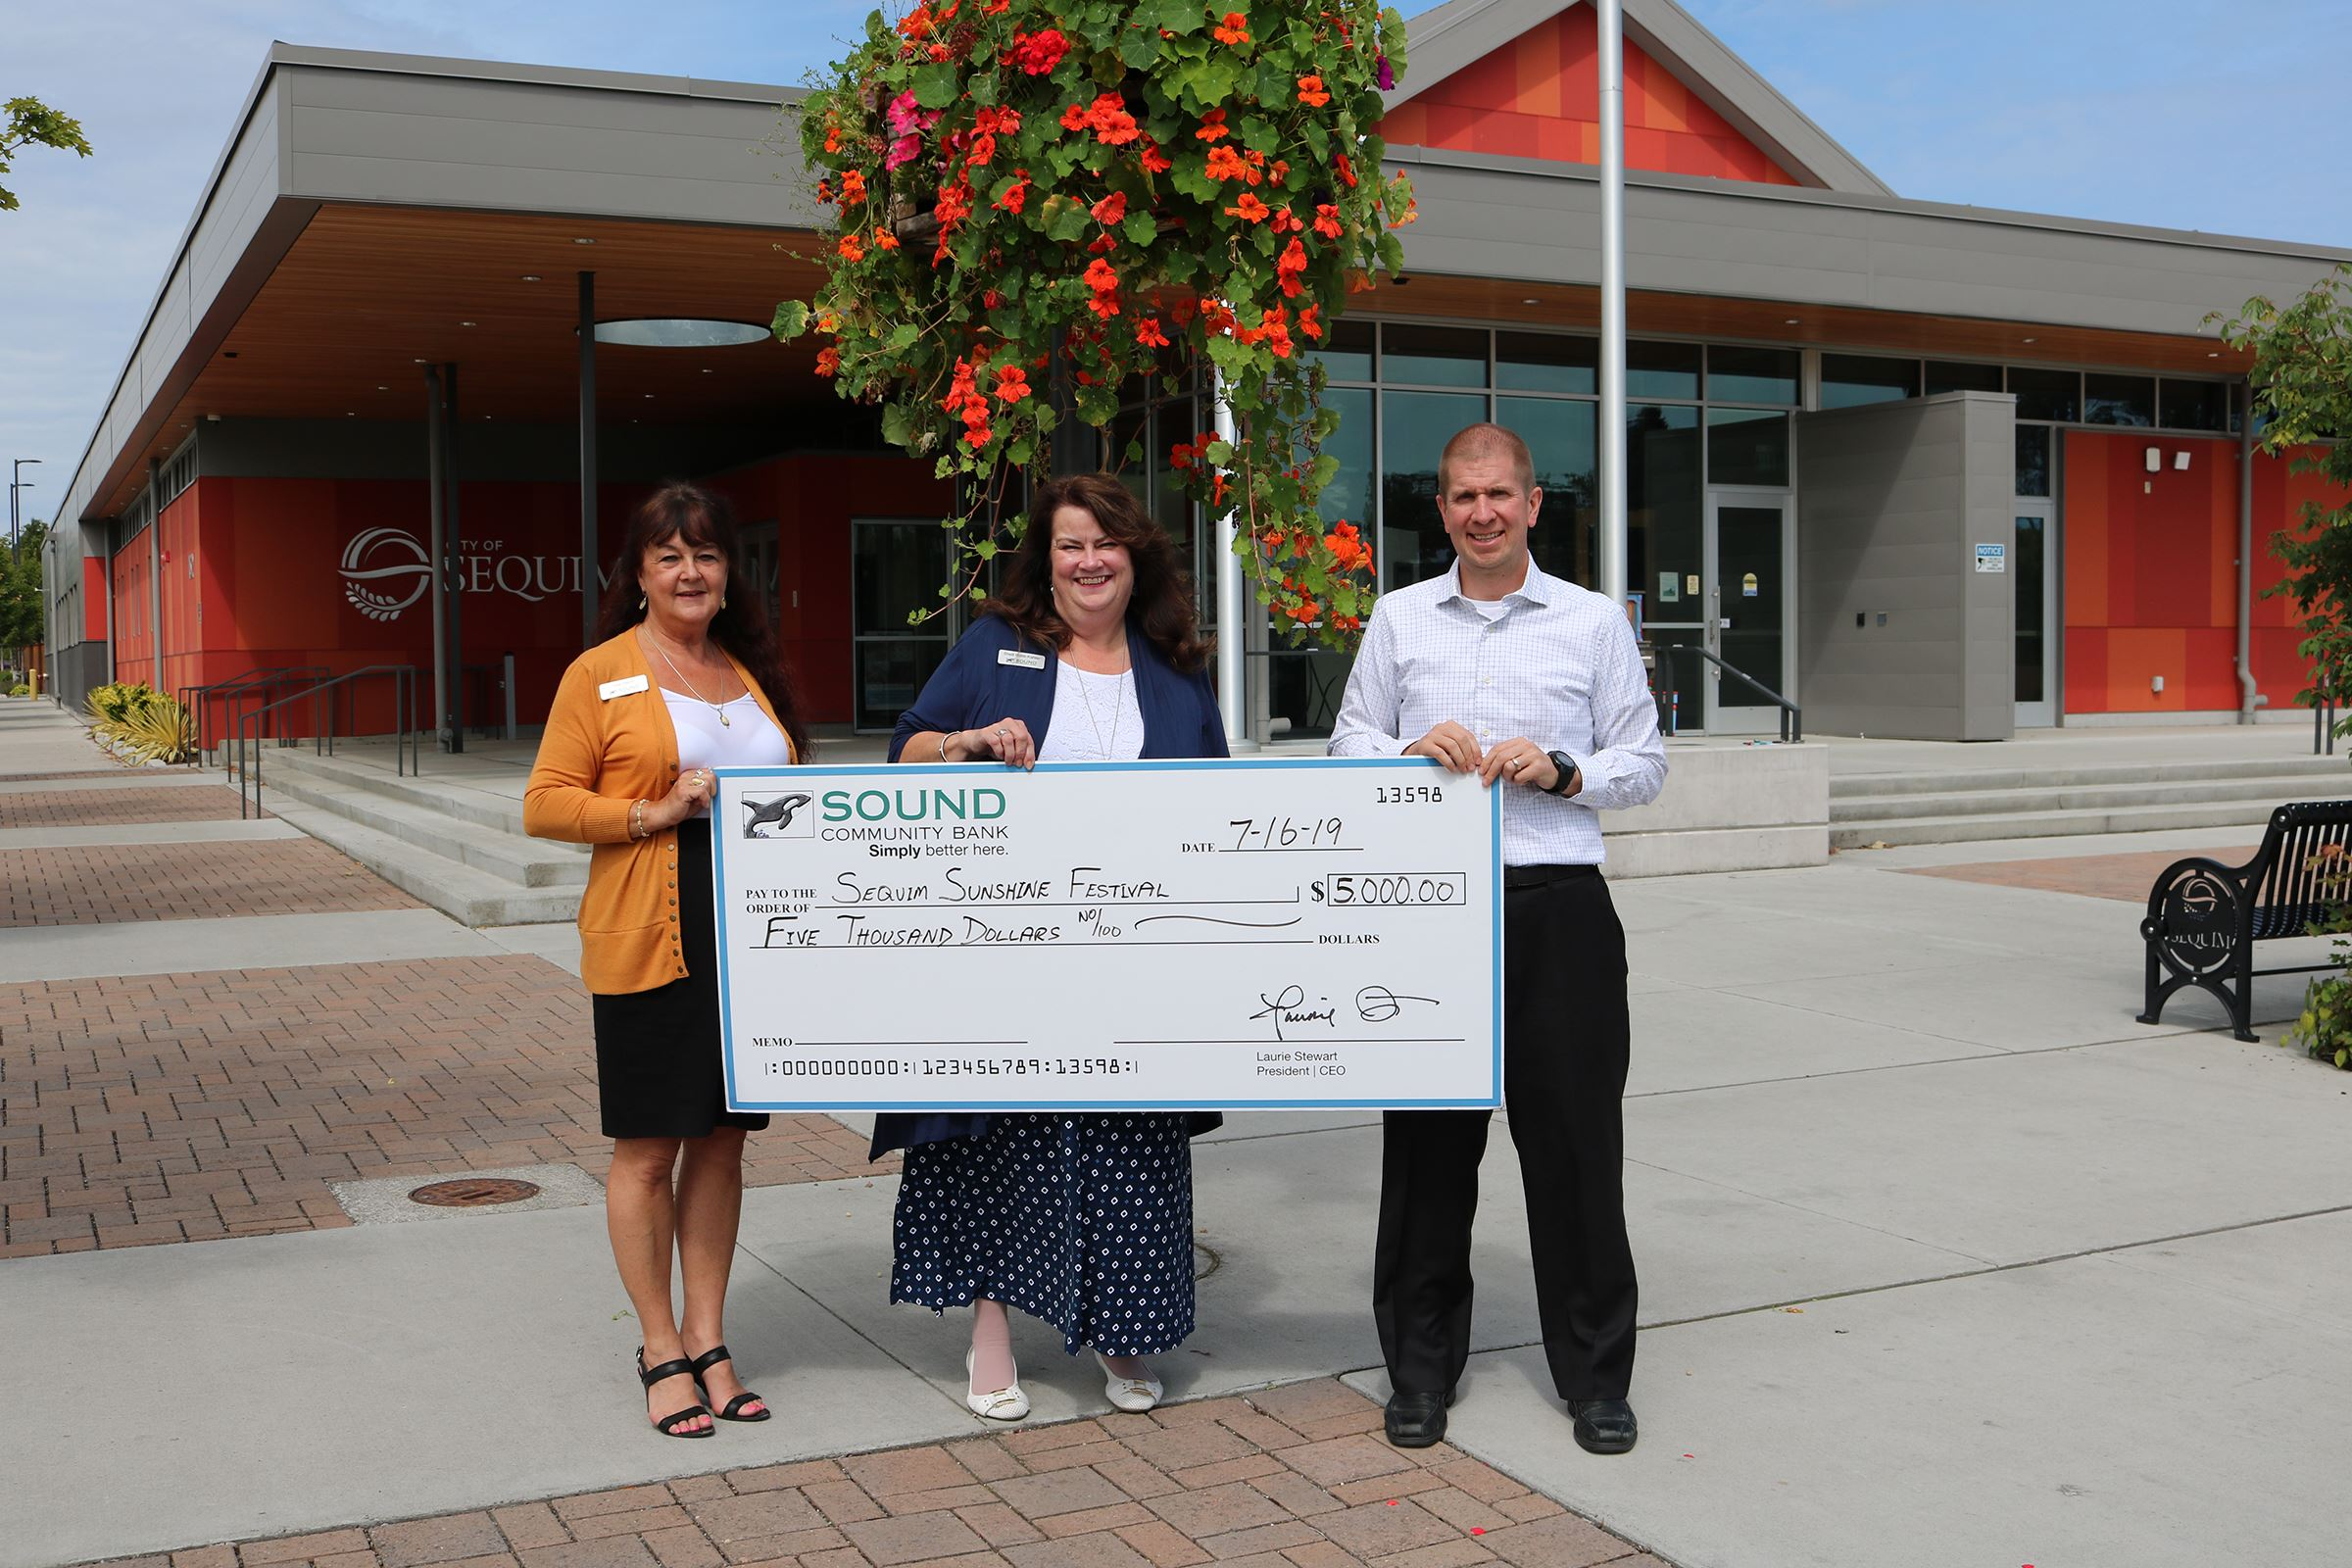 Sound Community Bank Sponsors Sequim Sunshine Festival